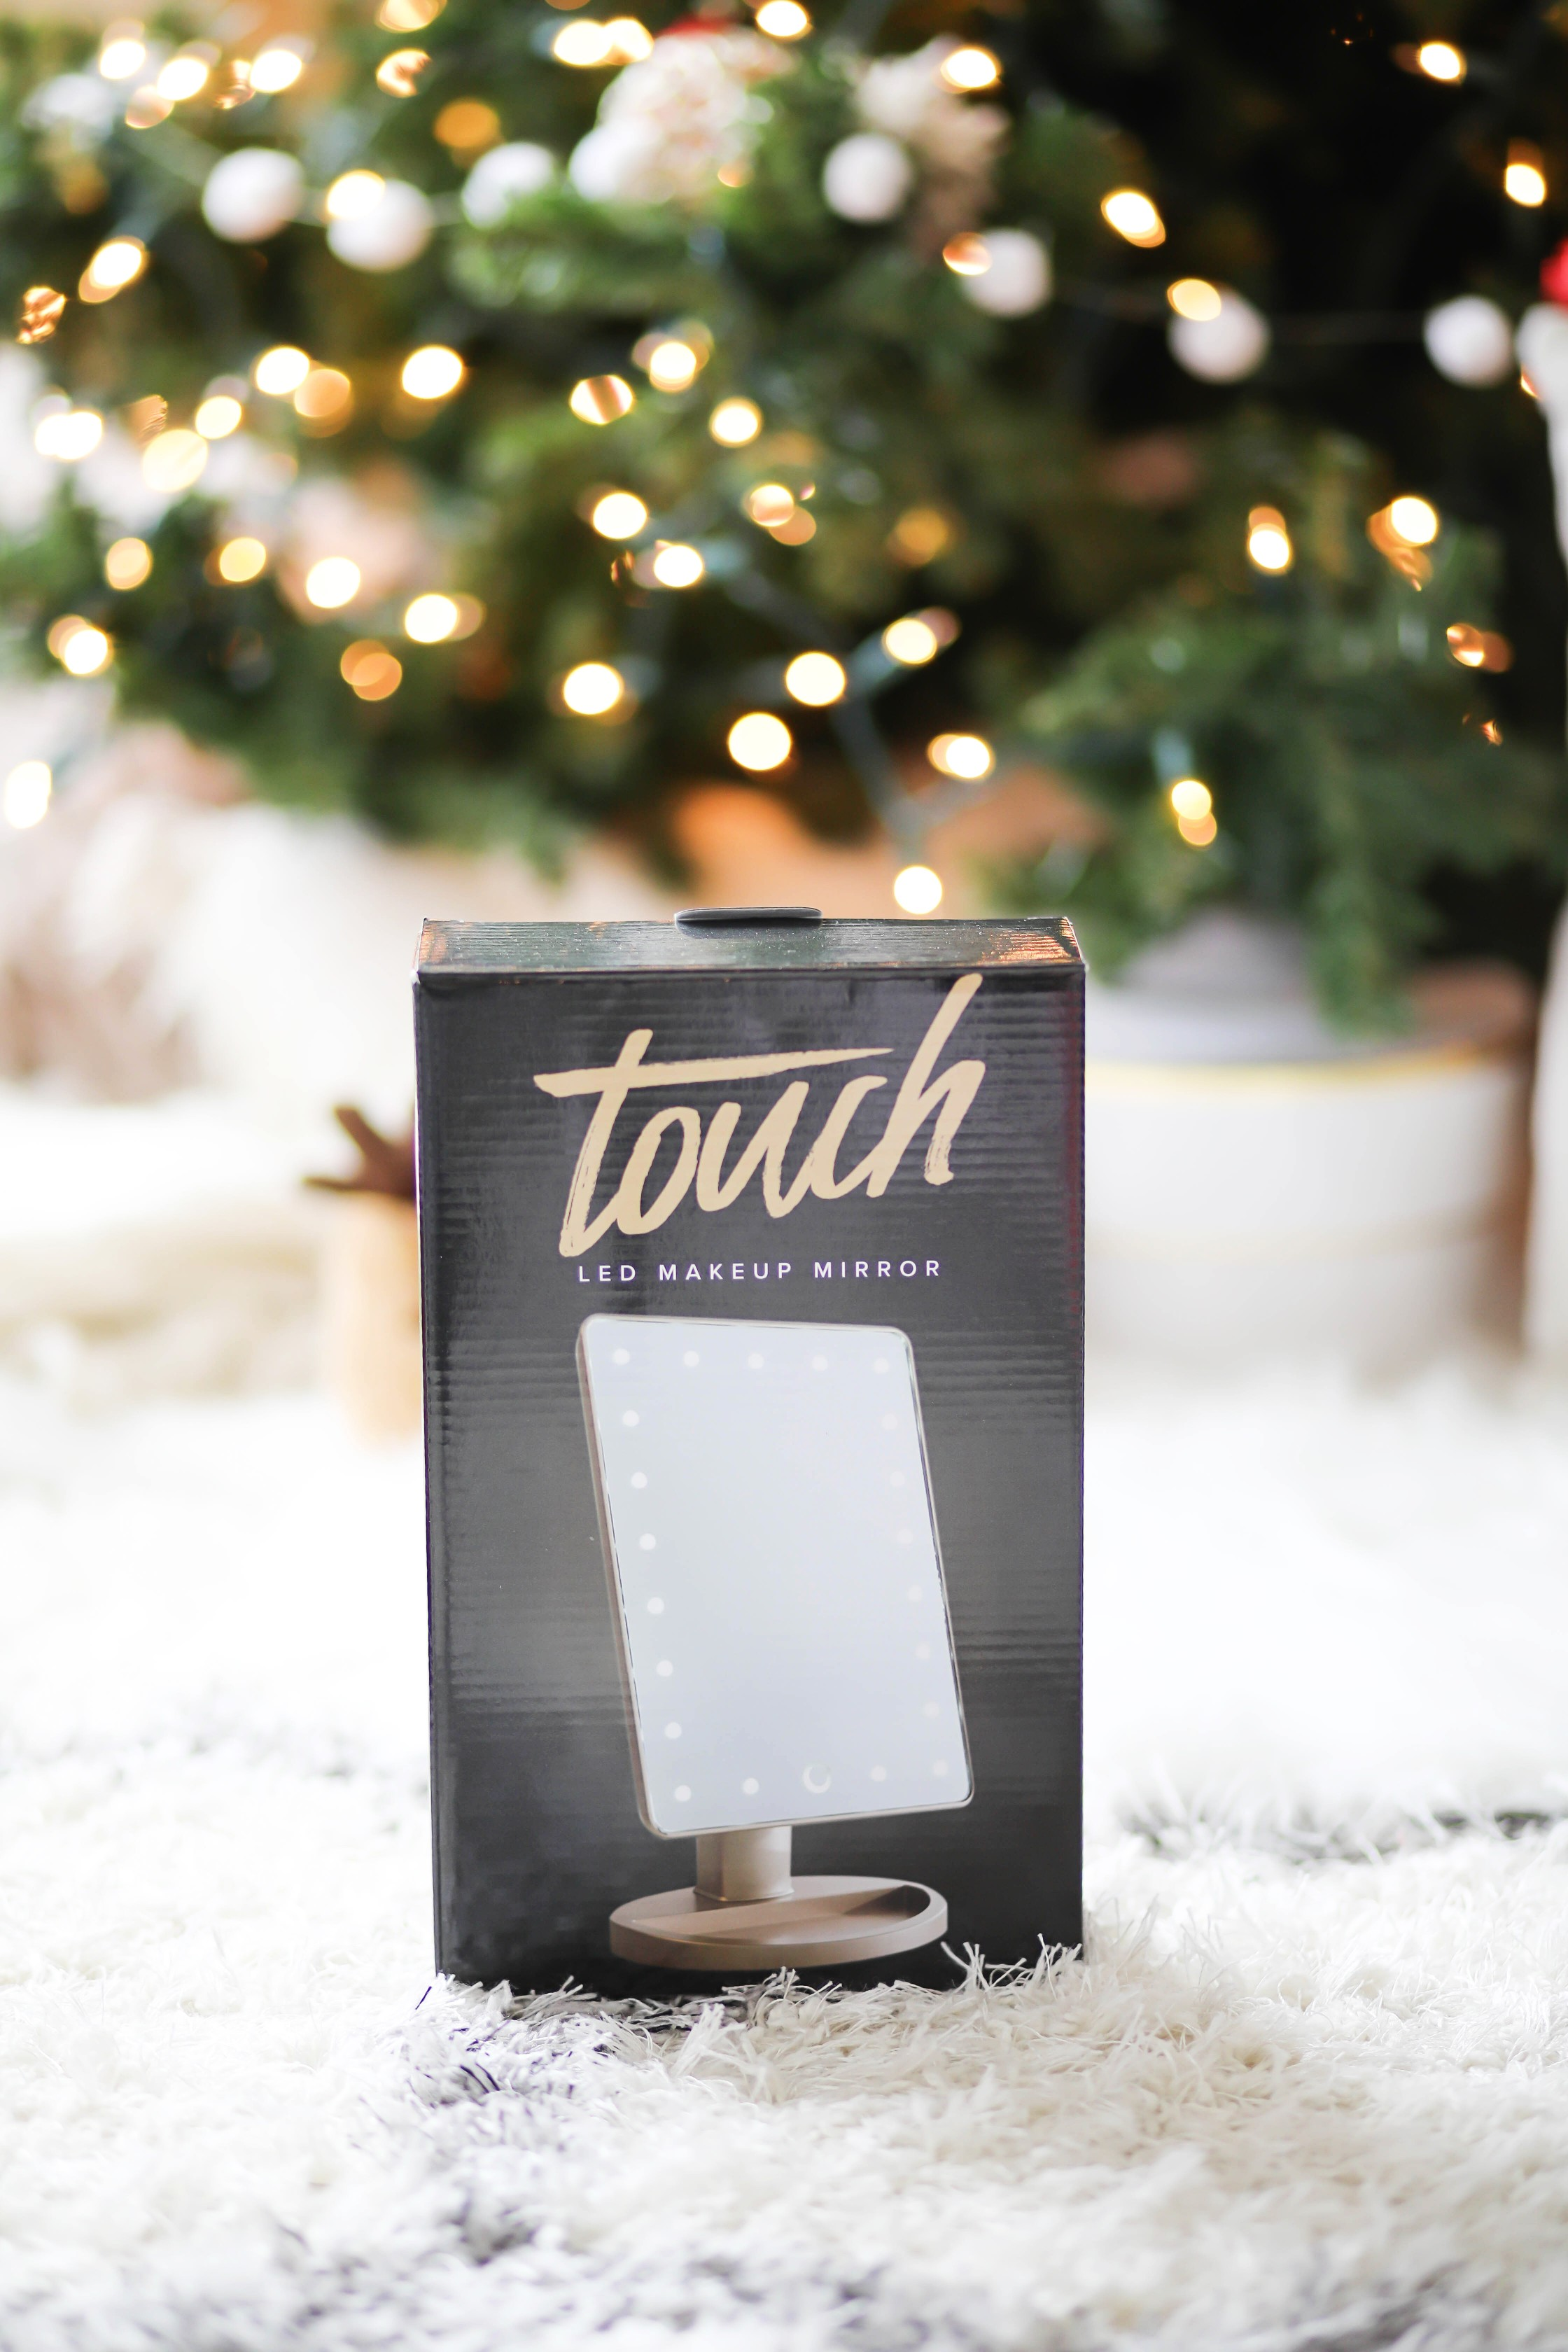 Touch 2.0 Dimmable LED Vanity Mirror WHAT I GOT FOR CHRISTMAS 2017